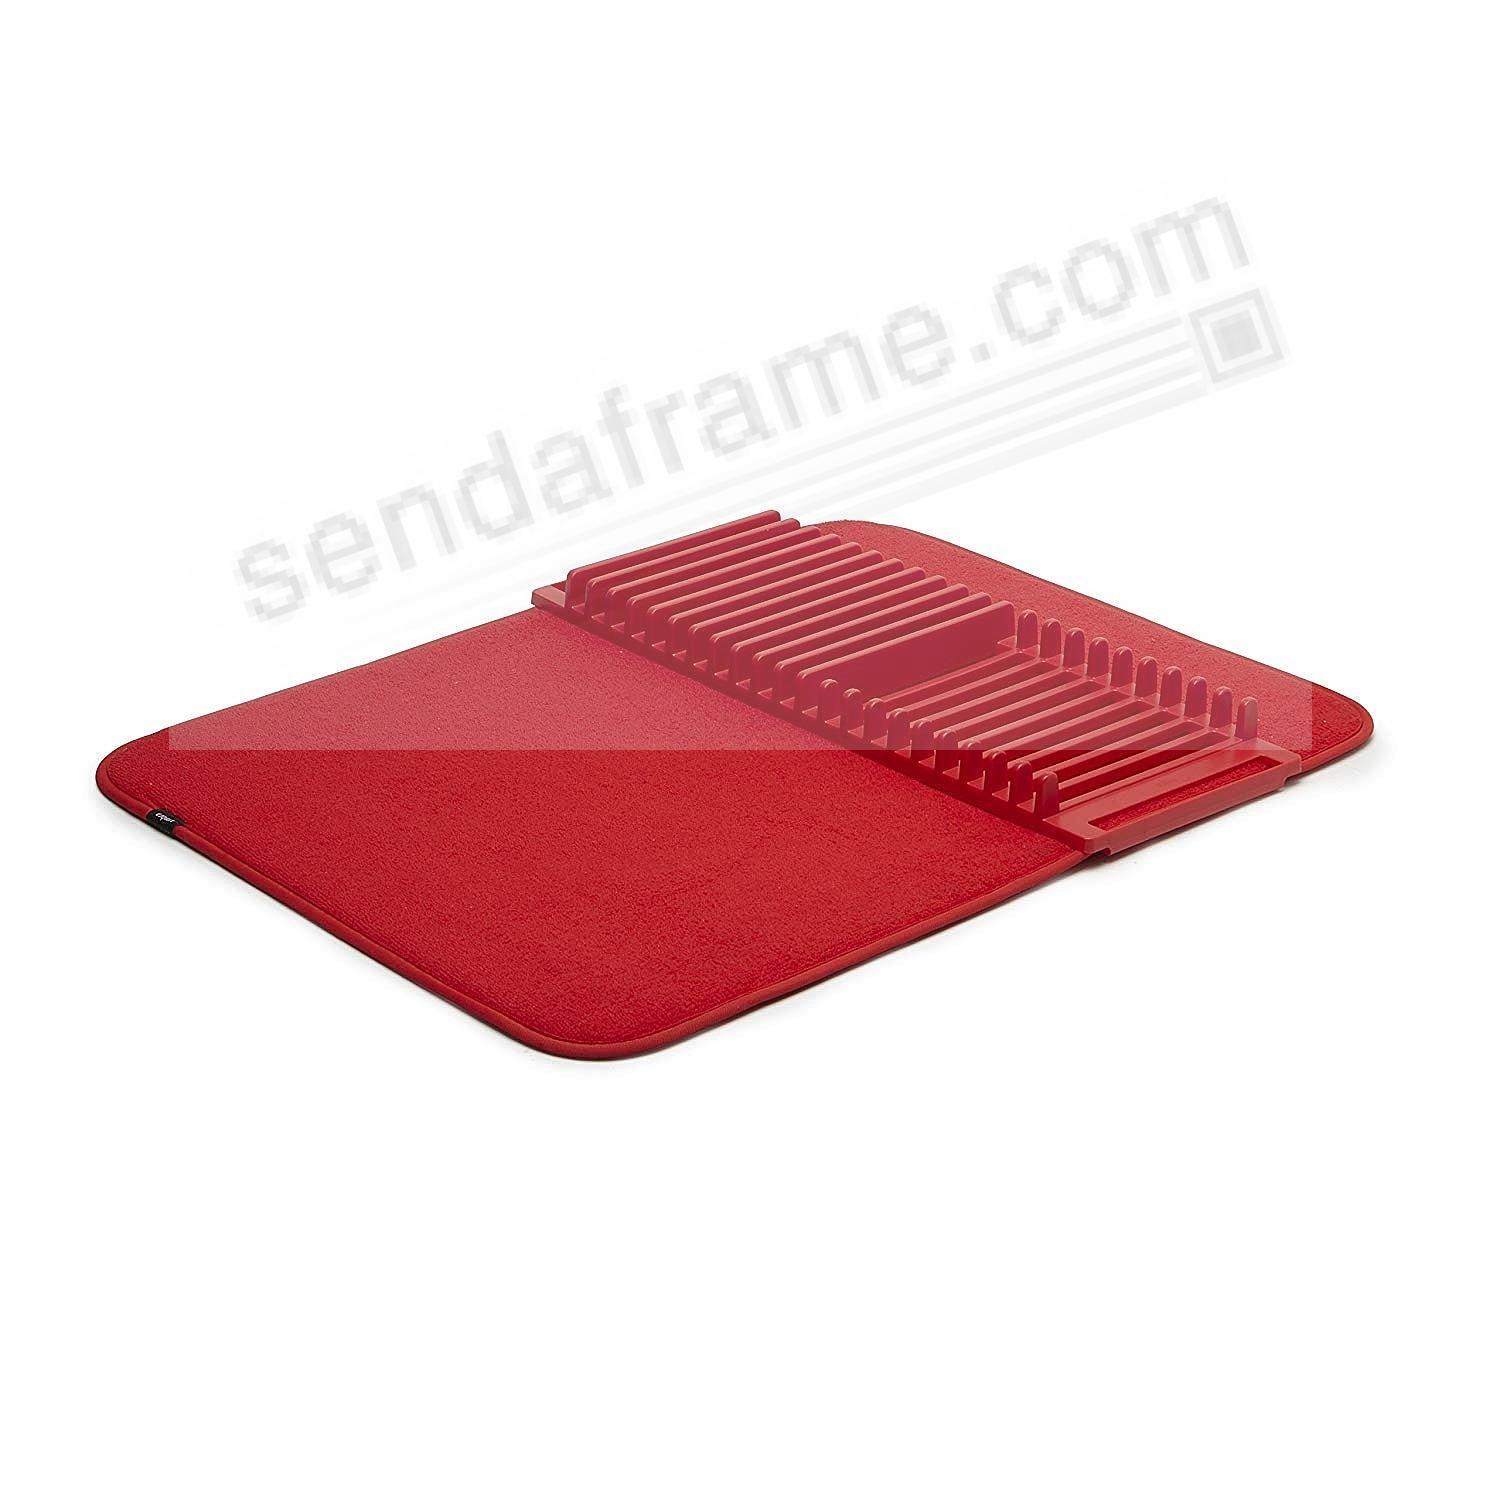 UDRY Drying Rack and Microfiber Dish Mat 24x18 - RED by Umbra®